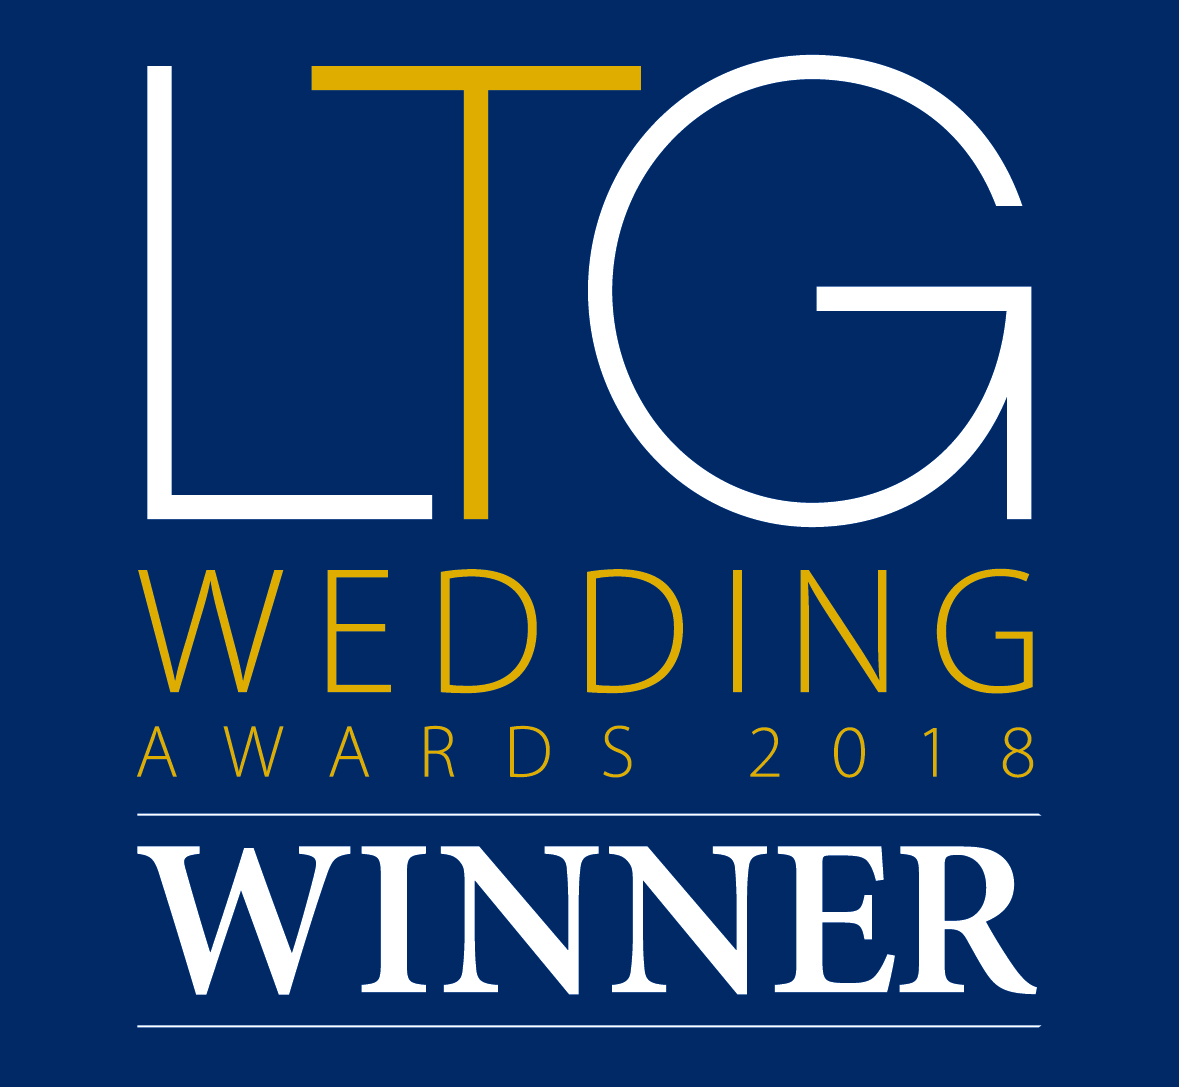 LTG Wedding Awards 2018 winners logo (1).jpg